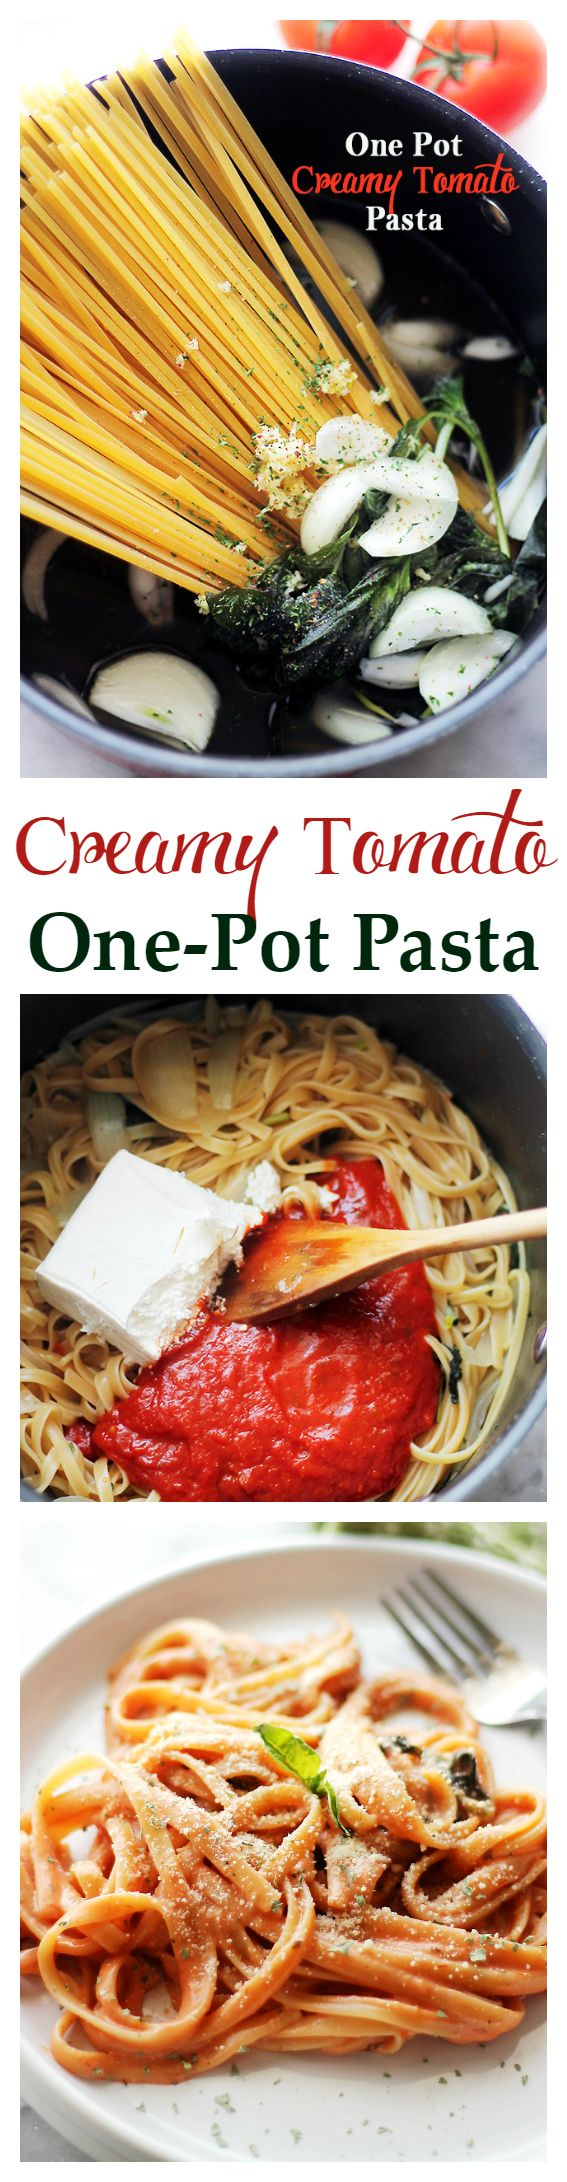 Creamy Tomato One Pot Pasta | www.diethood.com | The easiest and creamiest pasta without the cream! It all happens in the same pot and it will be on your dinner table in just 20 minutes! | #onepot #pasta